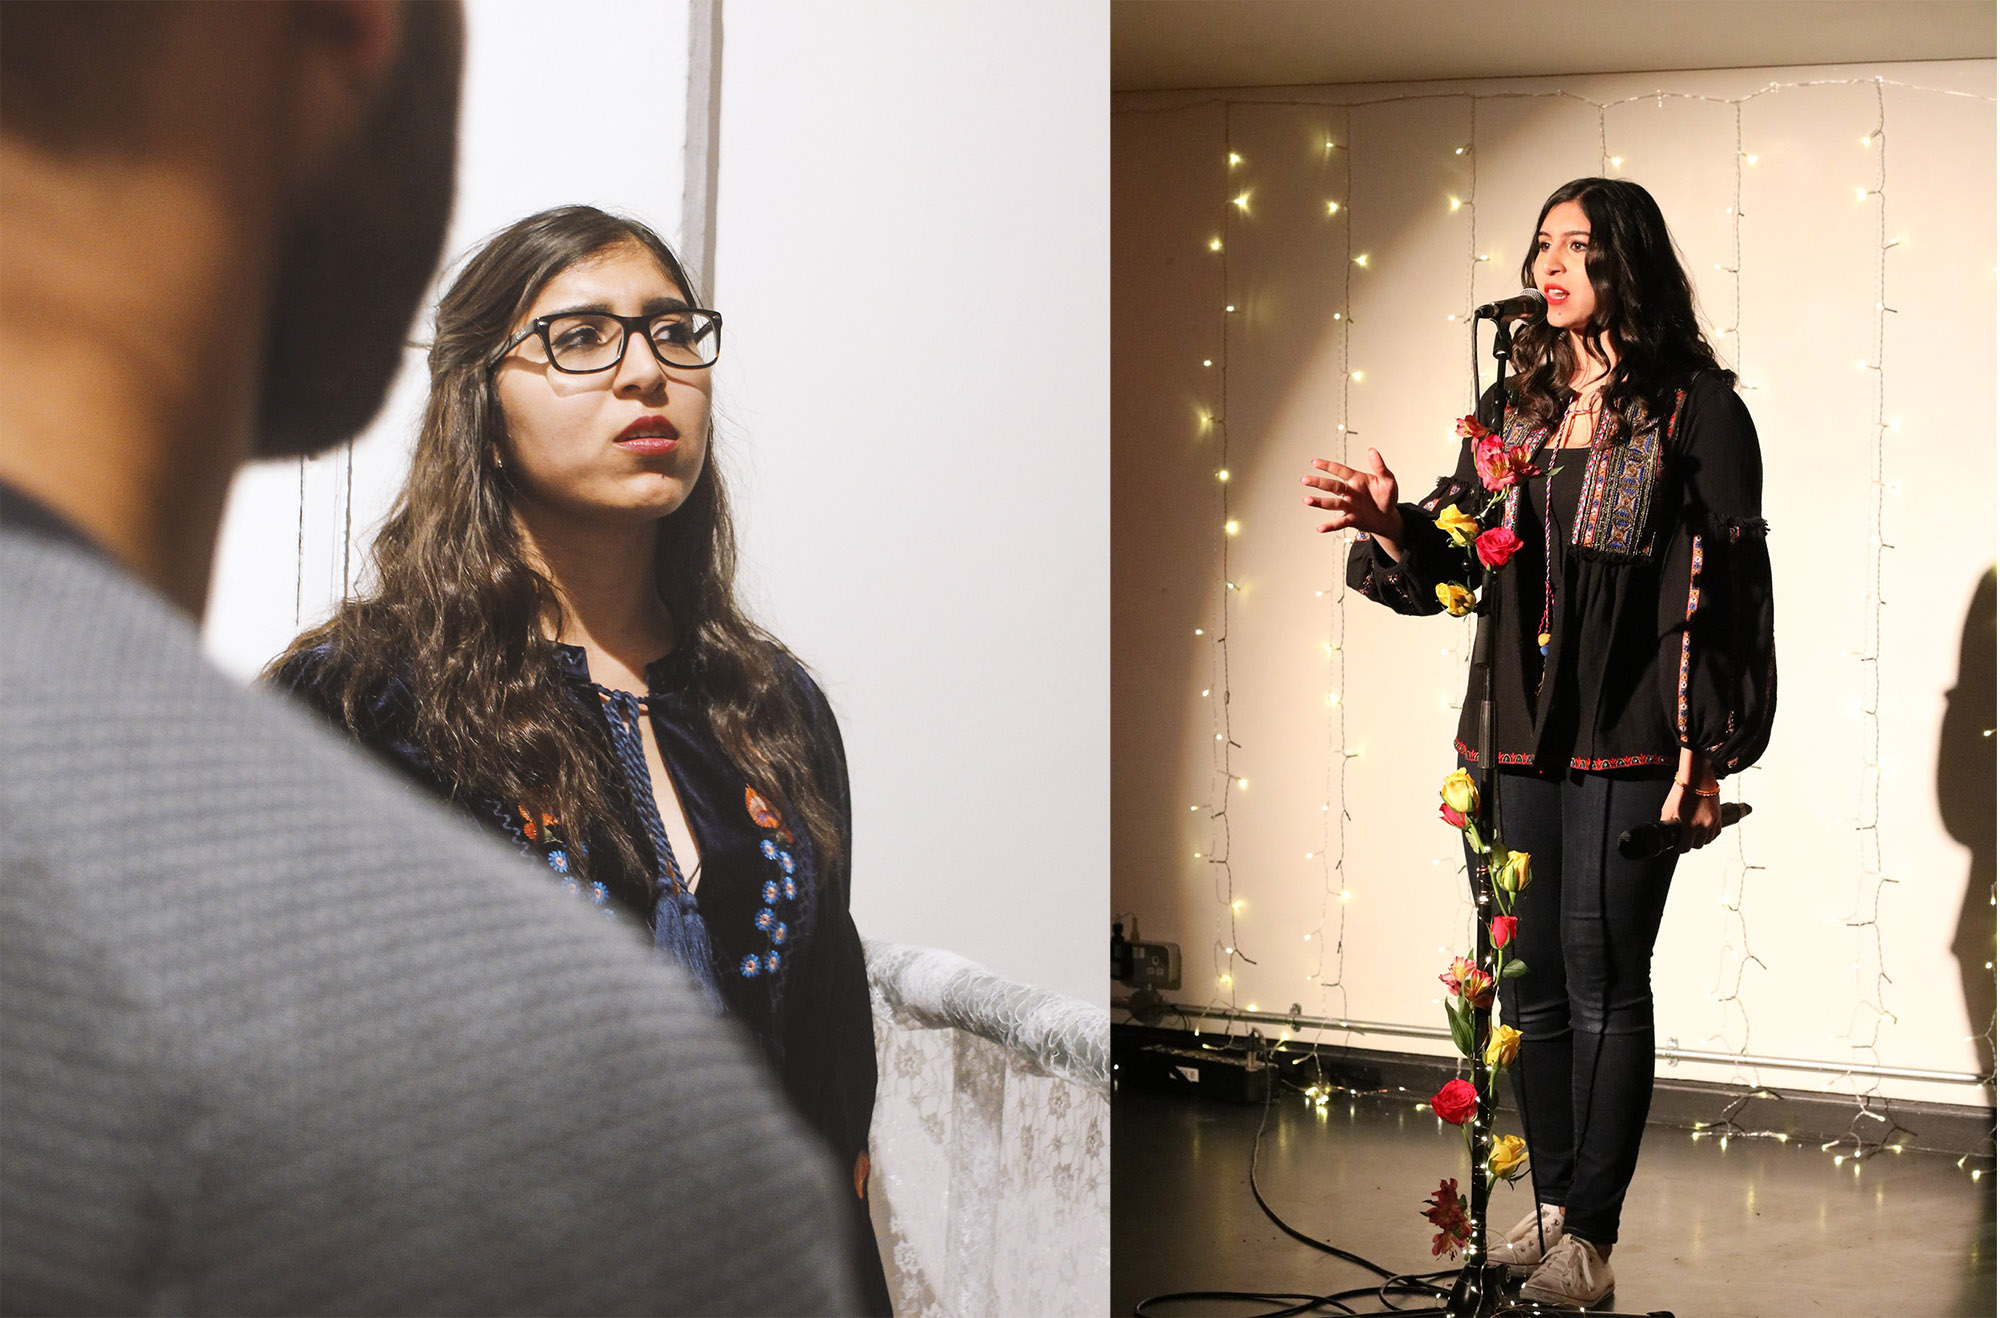 Left, Amani performing spoken word at the BOBBA Exhibition launch party. Photo credit: Joe Fetta  Right, Amani at Golden Tongue with the Yoniverse. Photo credit:Christy Ku